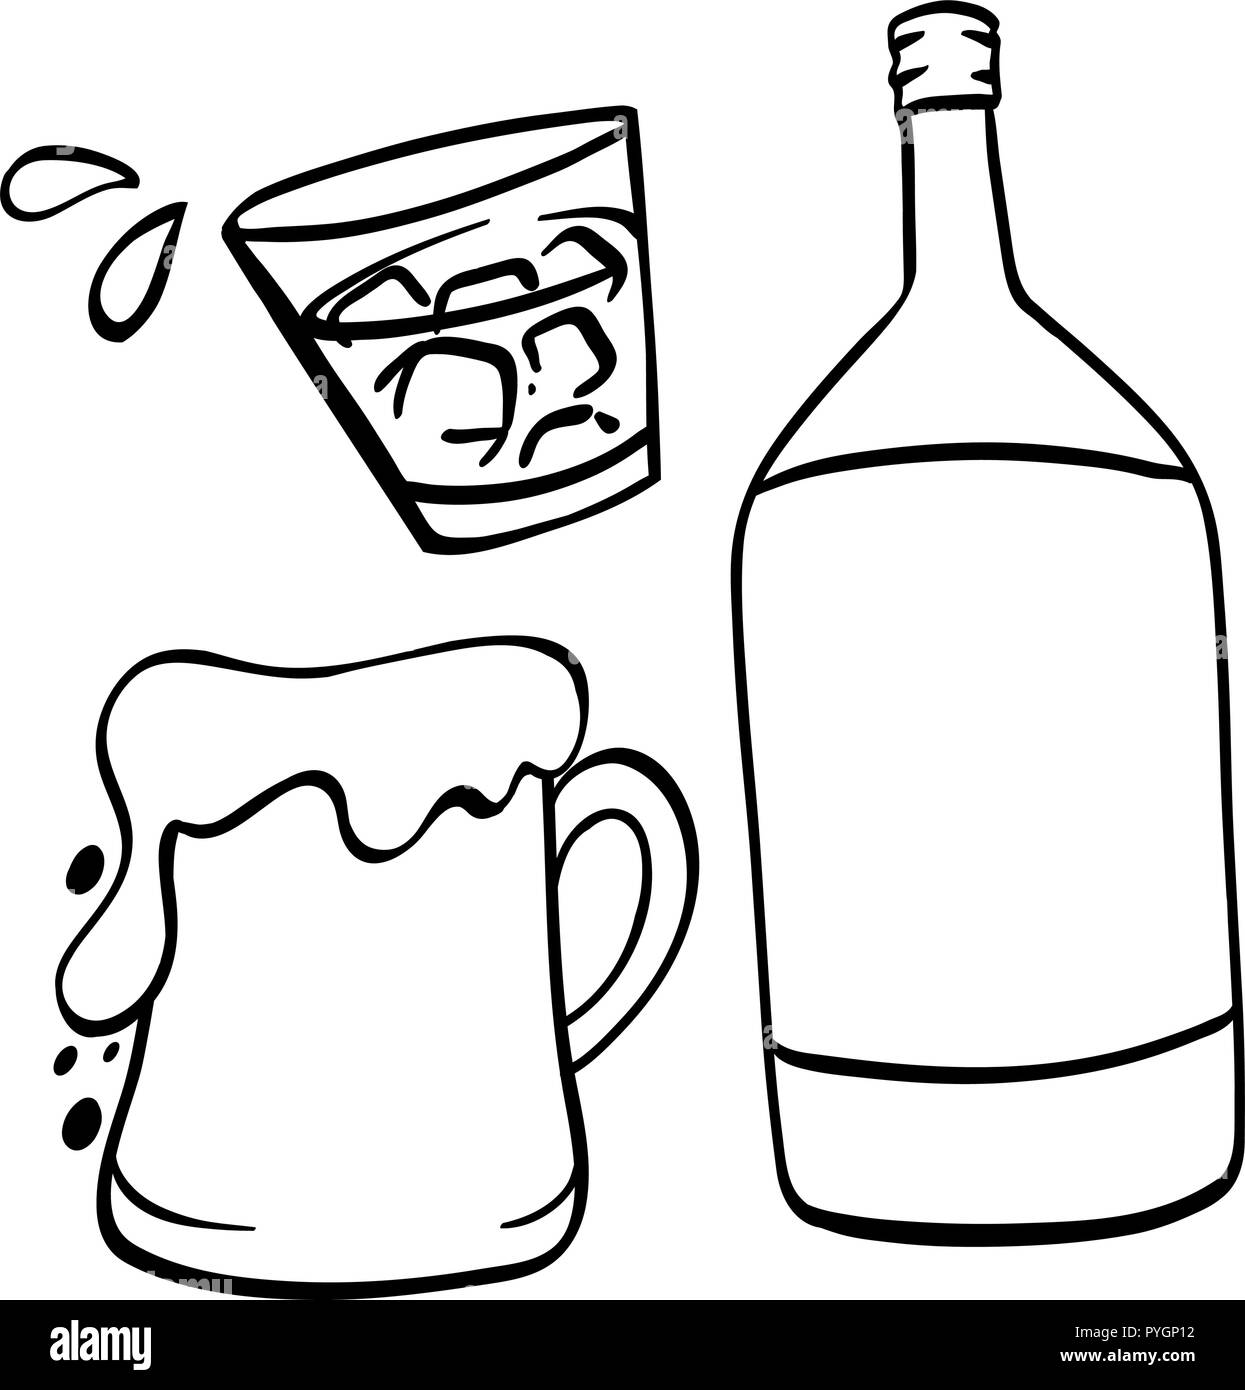 Doodle drawing for beer and alcohol illustration Stock Vector